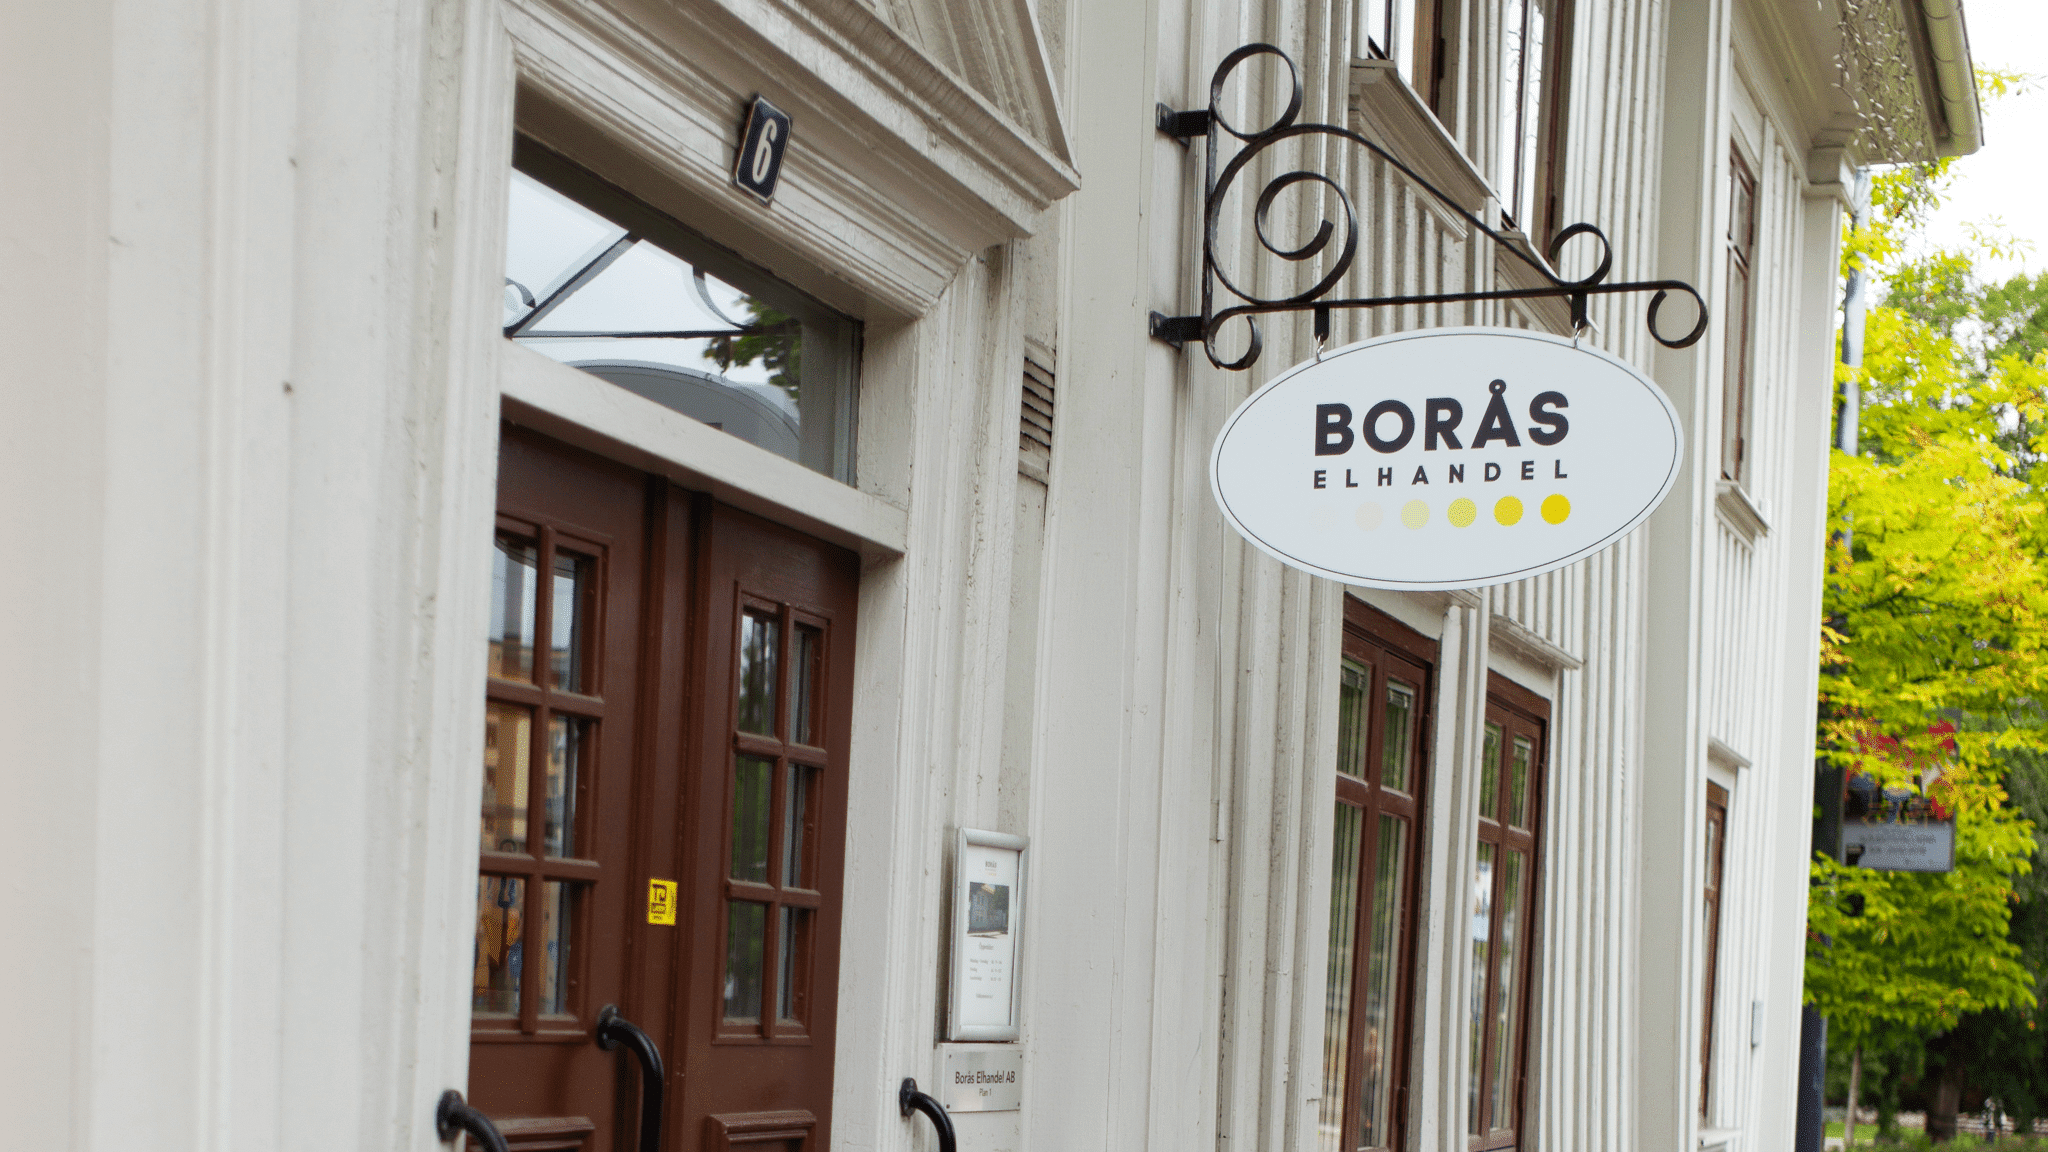 Photo of Borås Elhandel building front